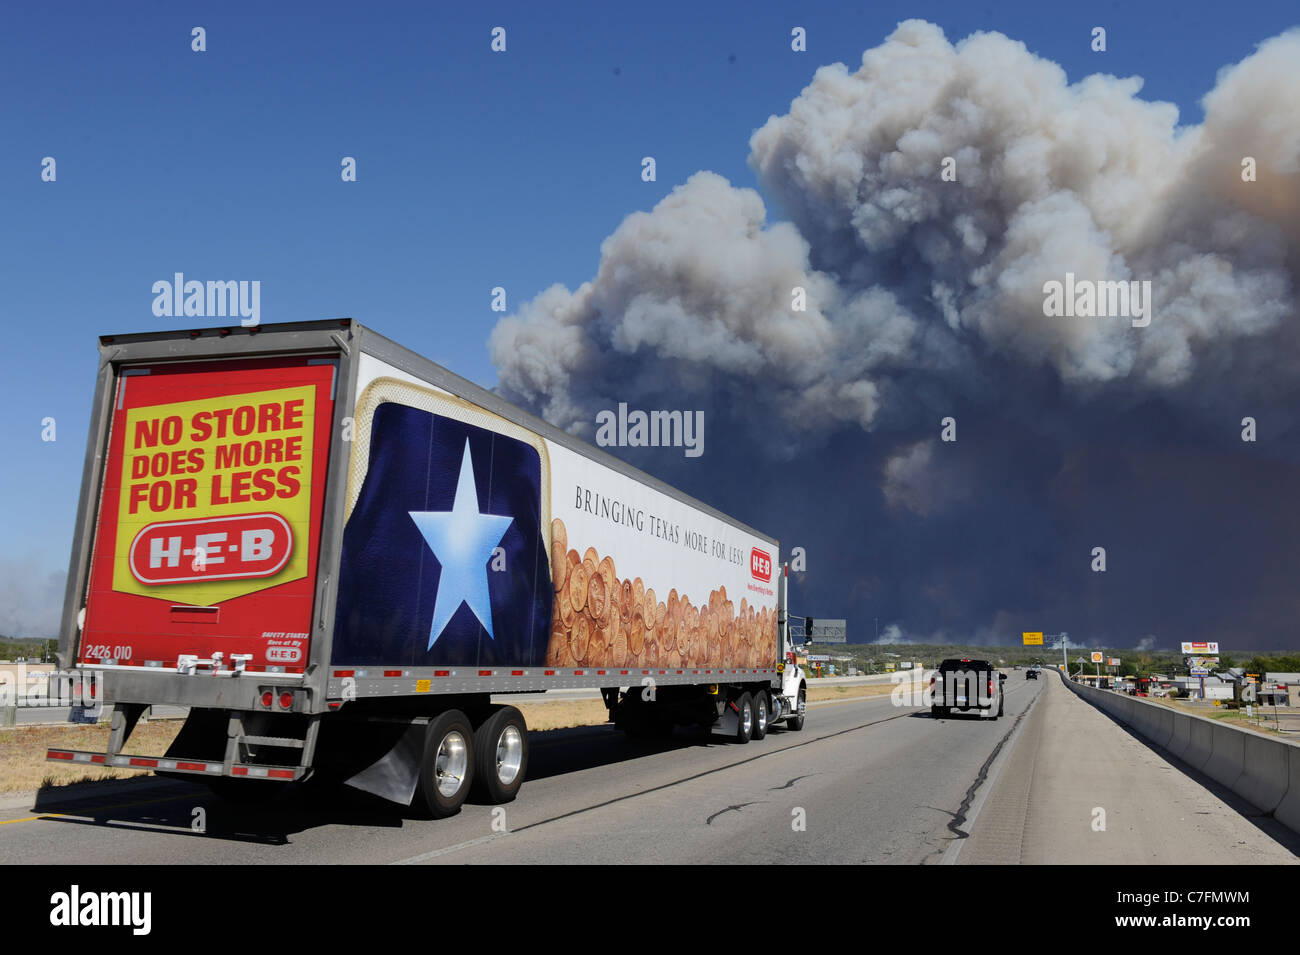 Grocery delivery truck with the texas lone star visible drives toward smoke from a wildfire burning